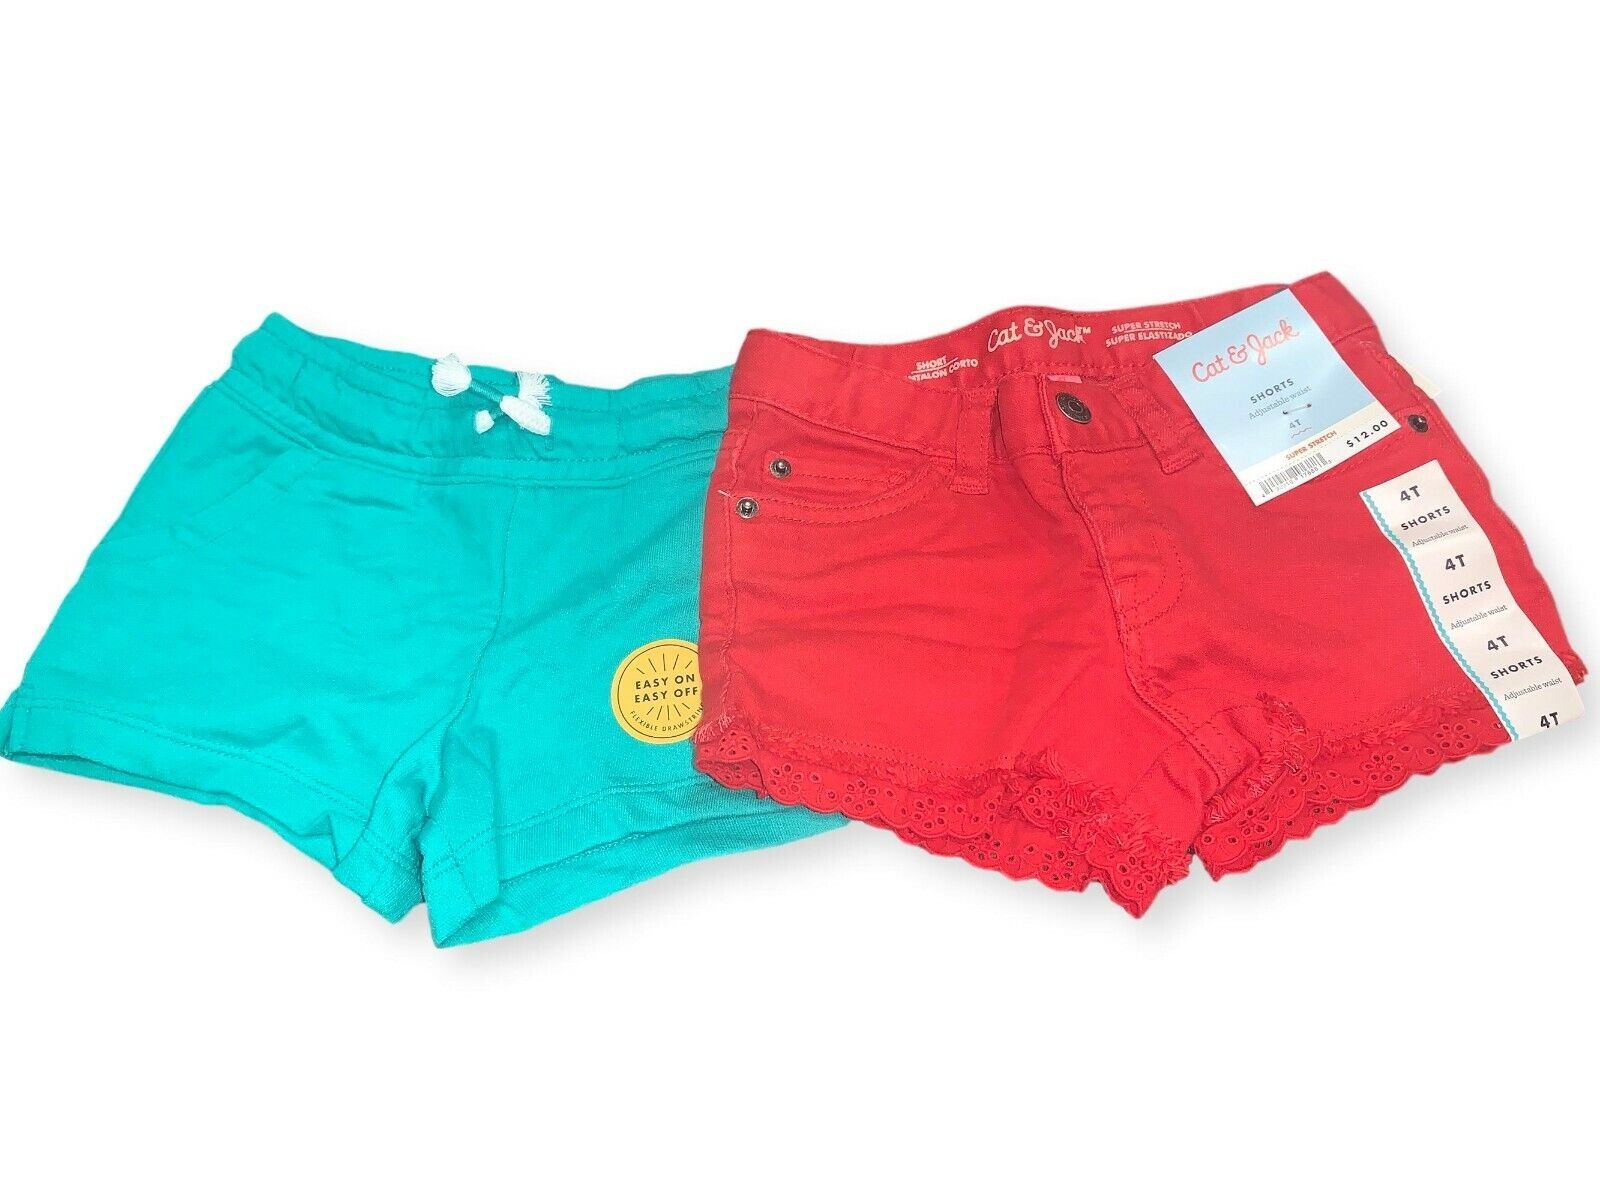 Cat & Jack Girls Summer shorts 2 pack- 4T-NWT Baby